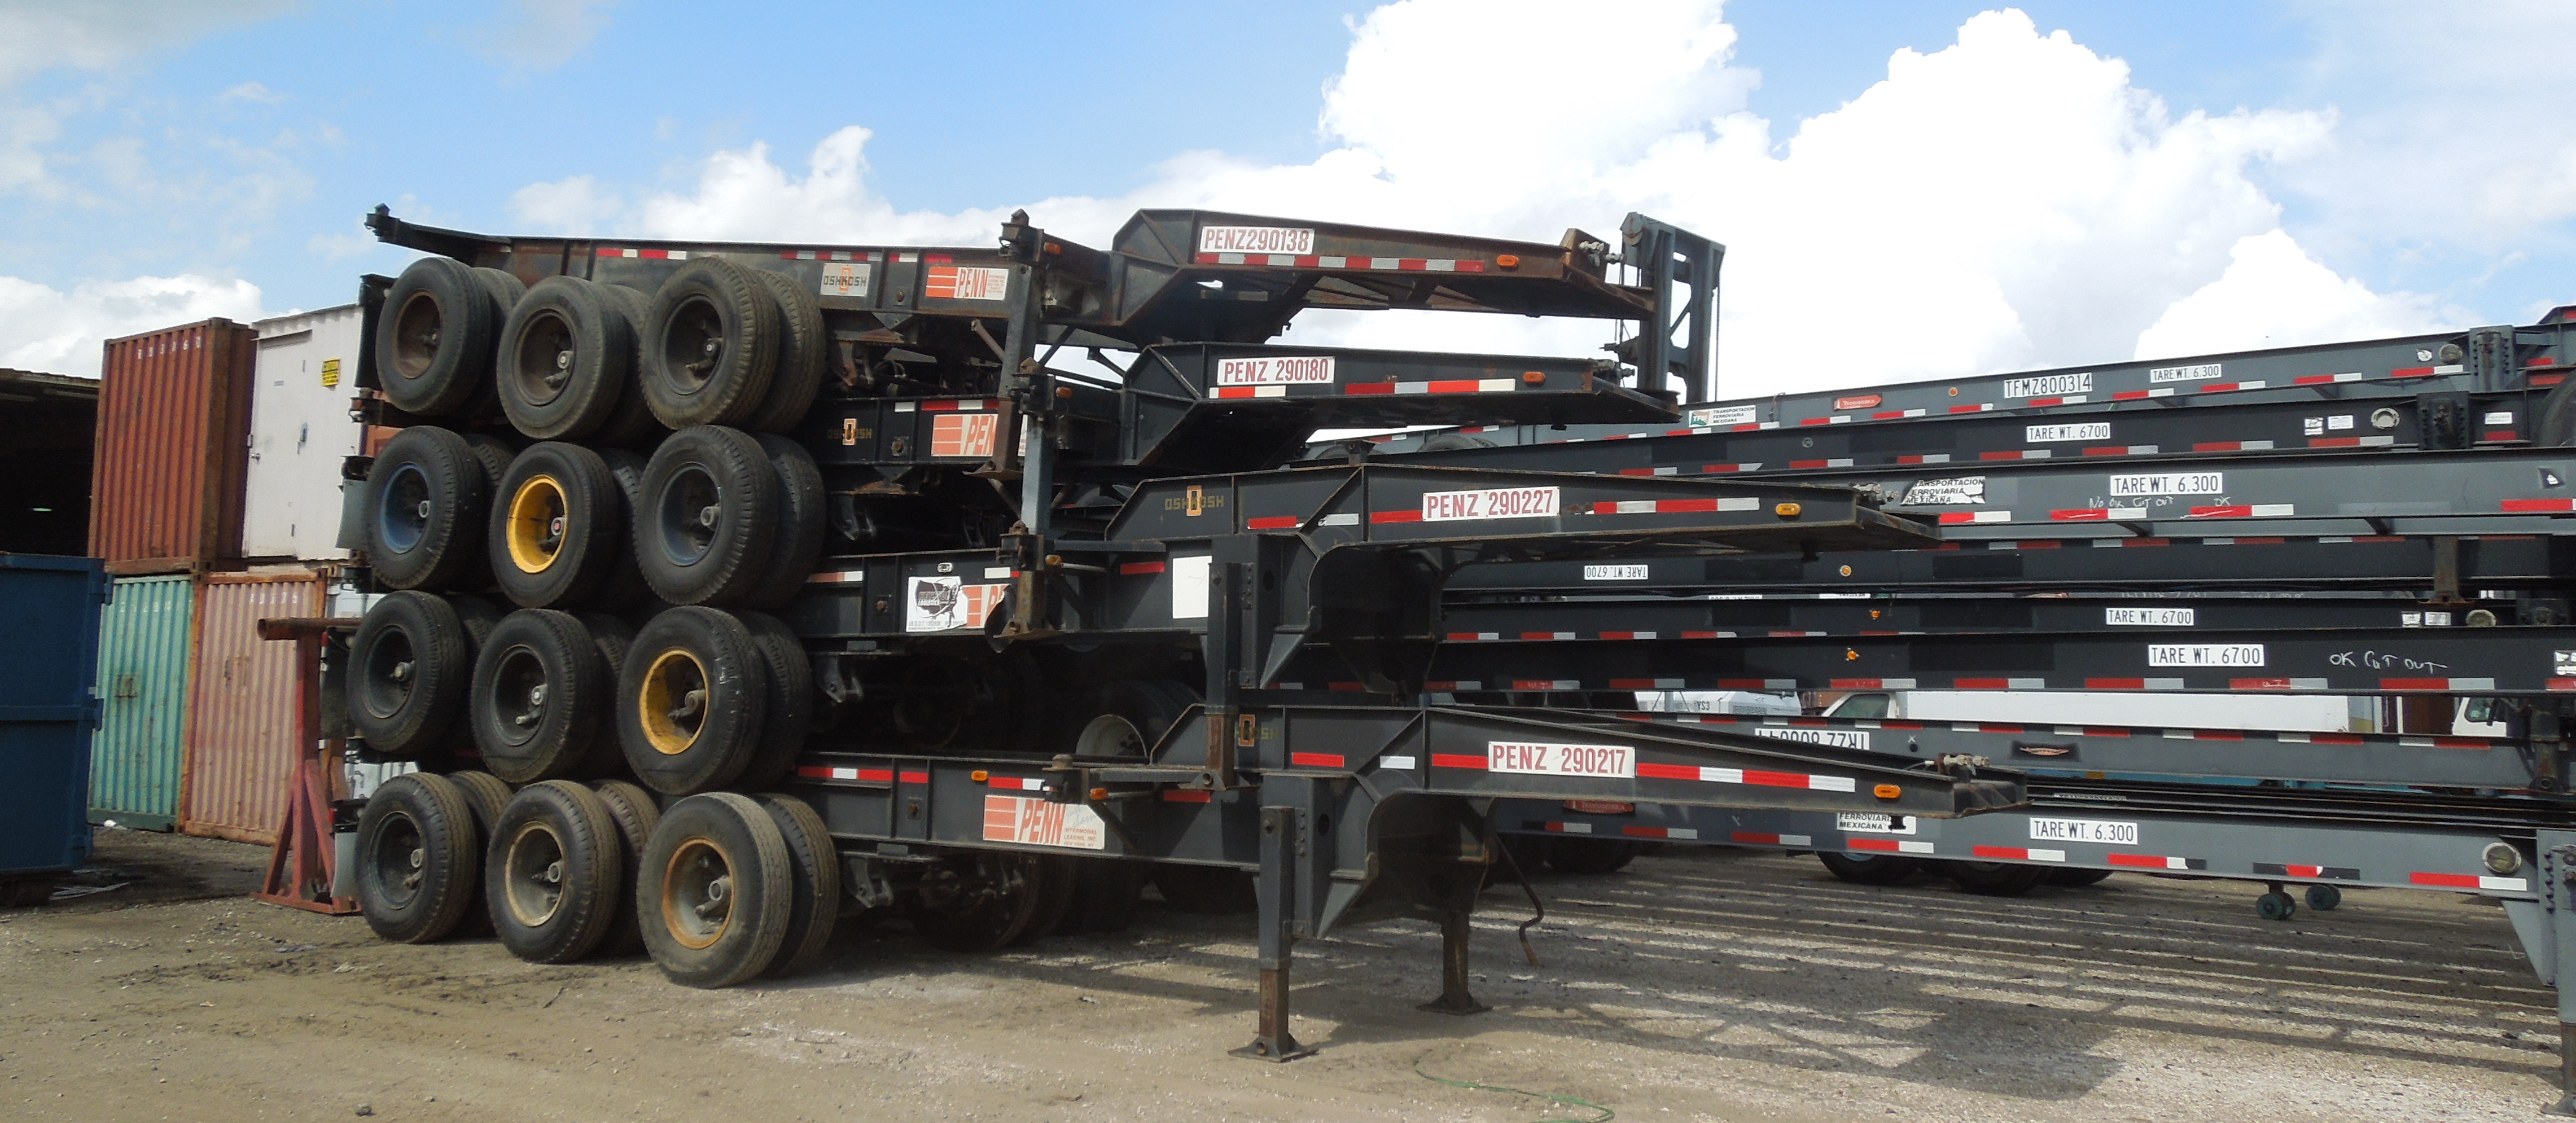 Preowned Intermodal & Dropframe Chassis for Sale